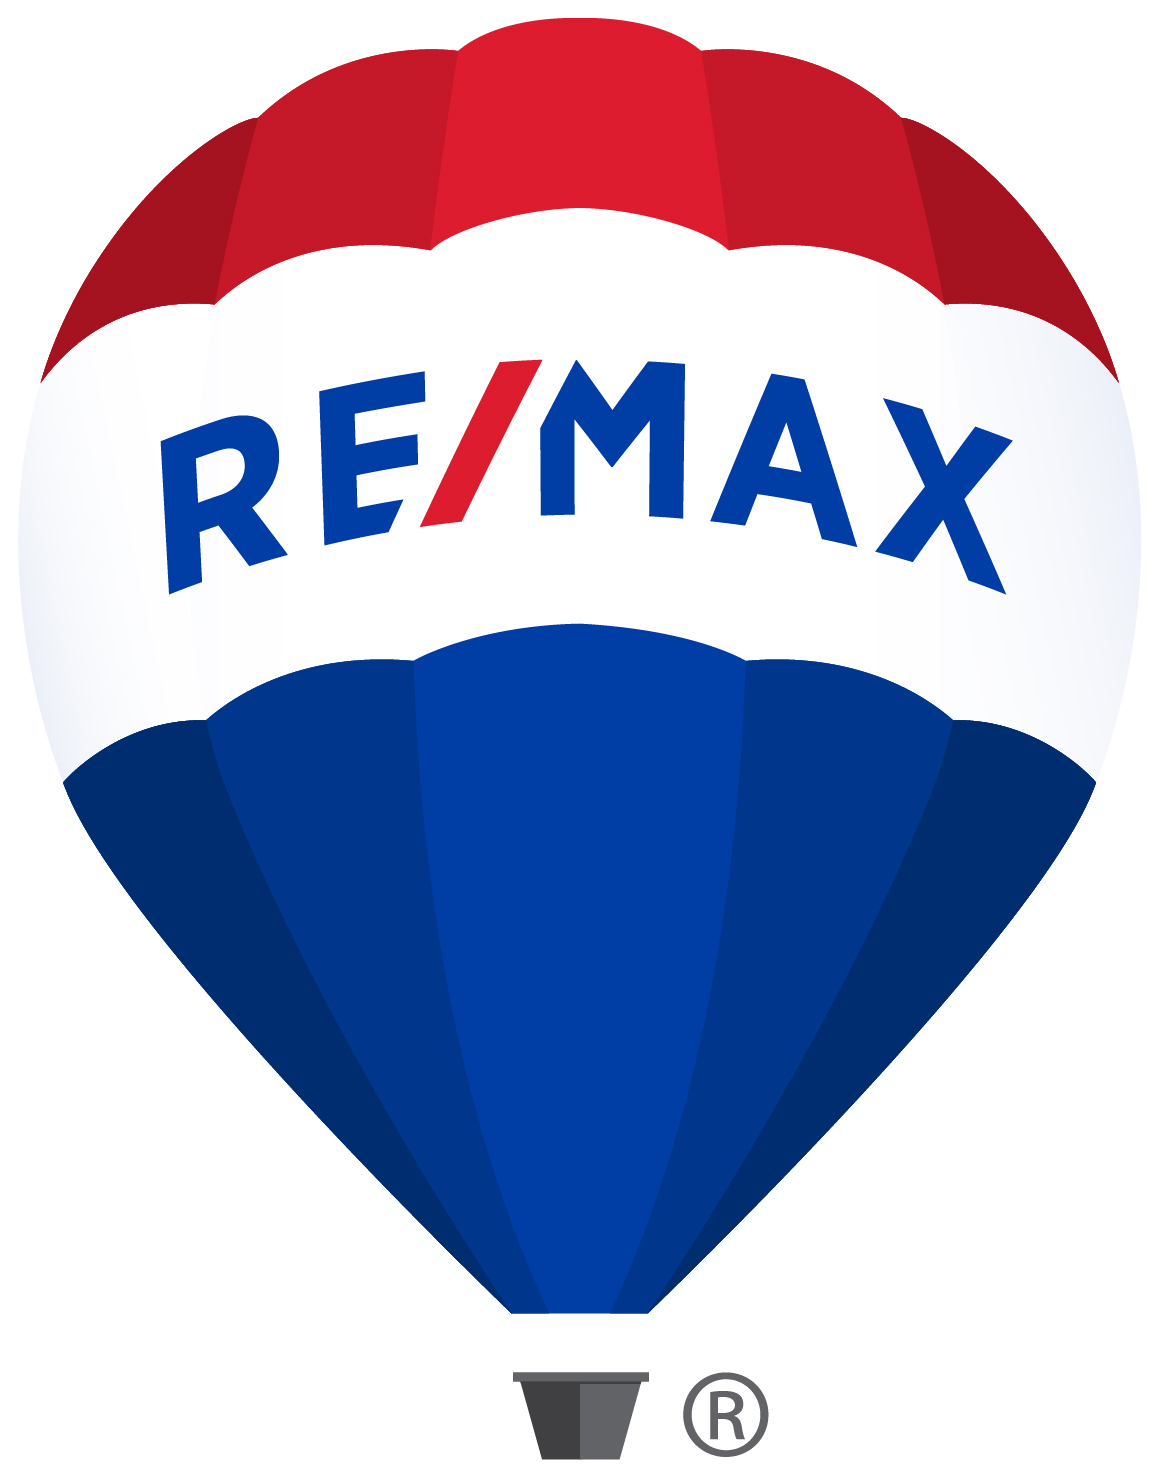 REMAX Gold - Chris Steele & Associates